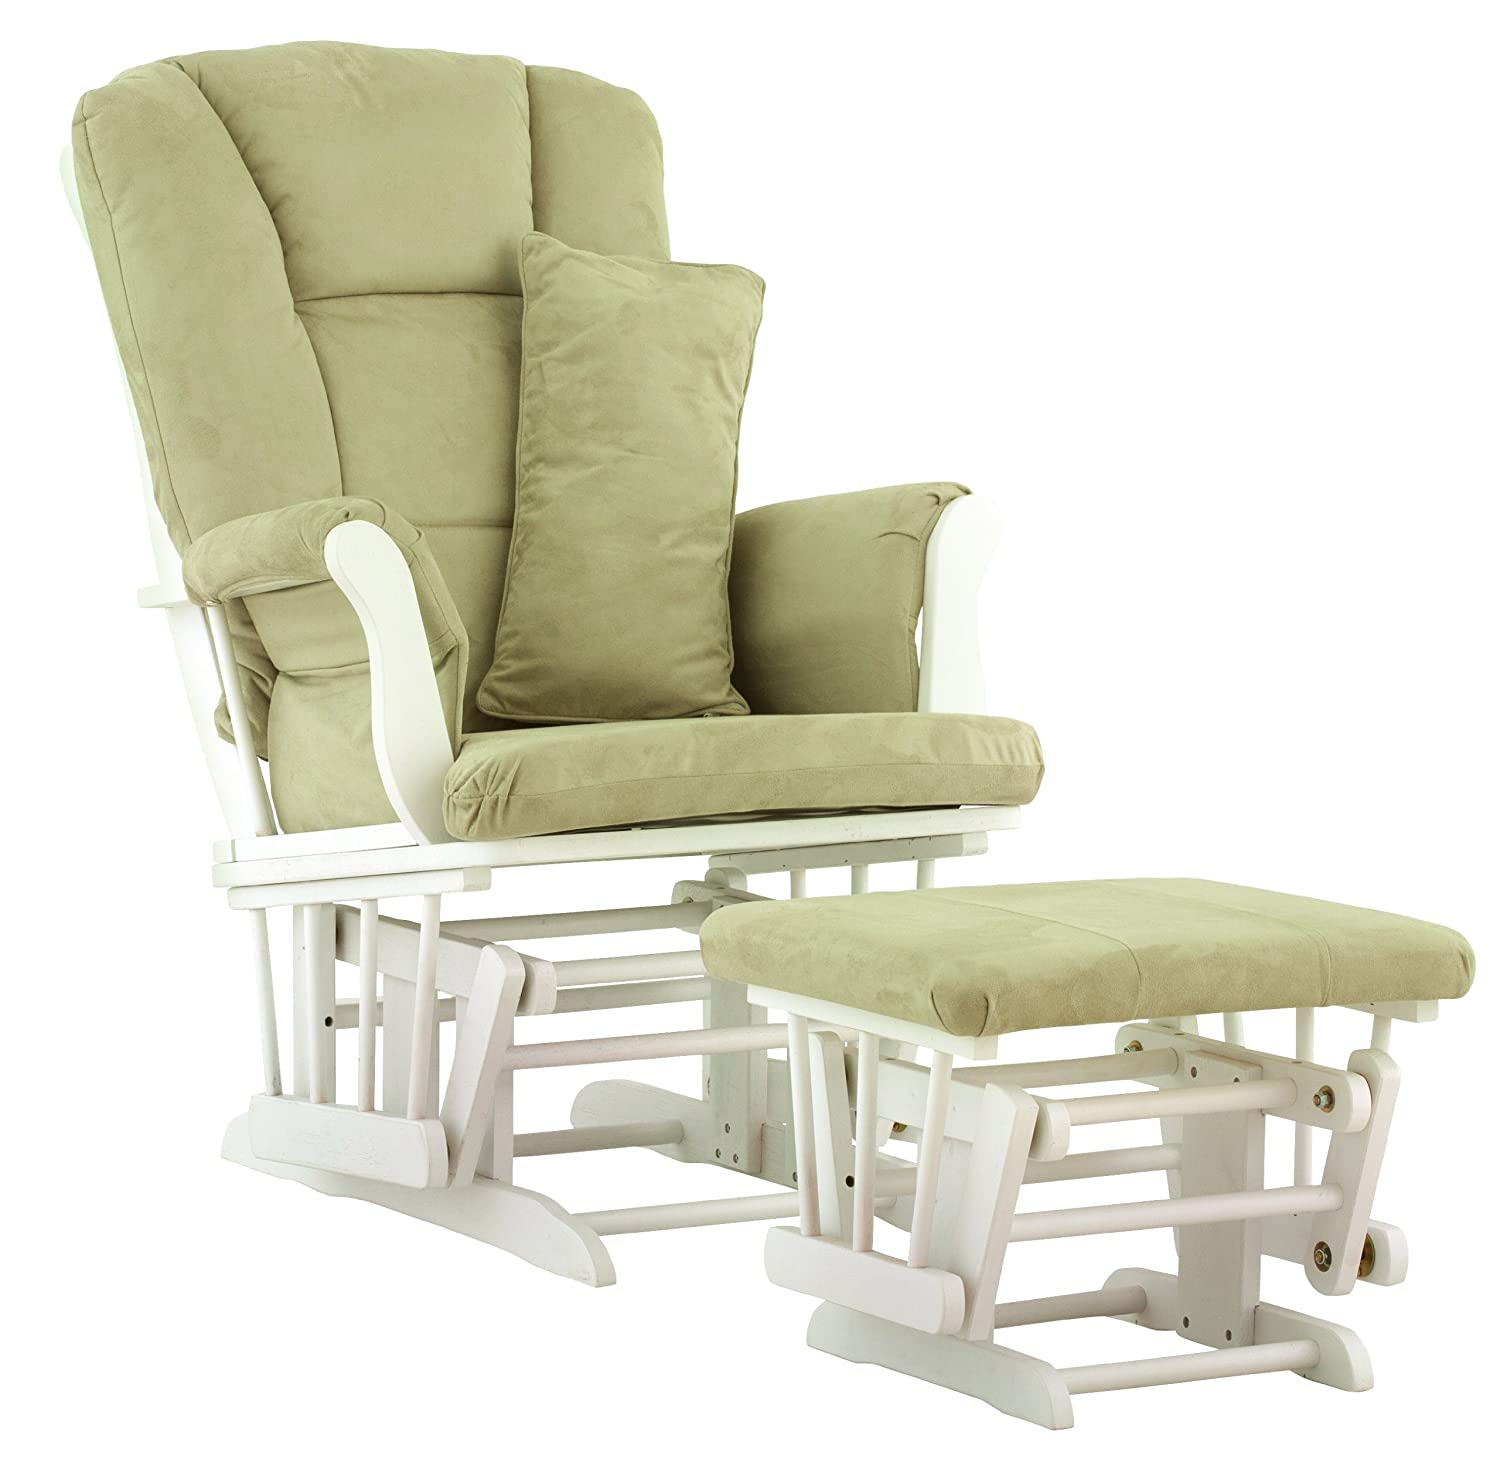 Delicieux Amazon.com: Stork Craft Tuscany Custom Glider And Ottoman With Free Lumbar  Pillow, White/Sage: Baby